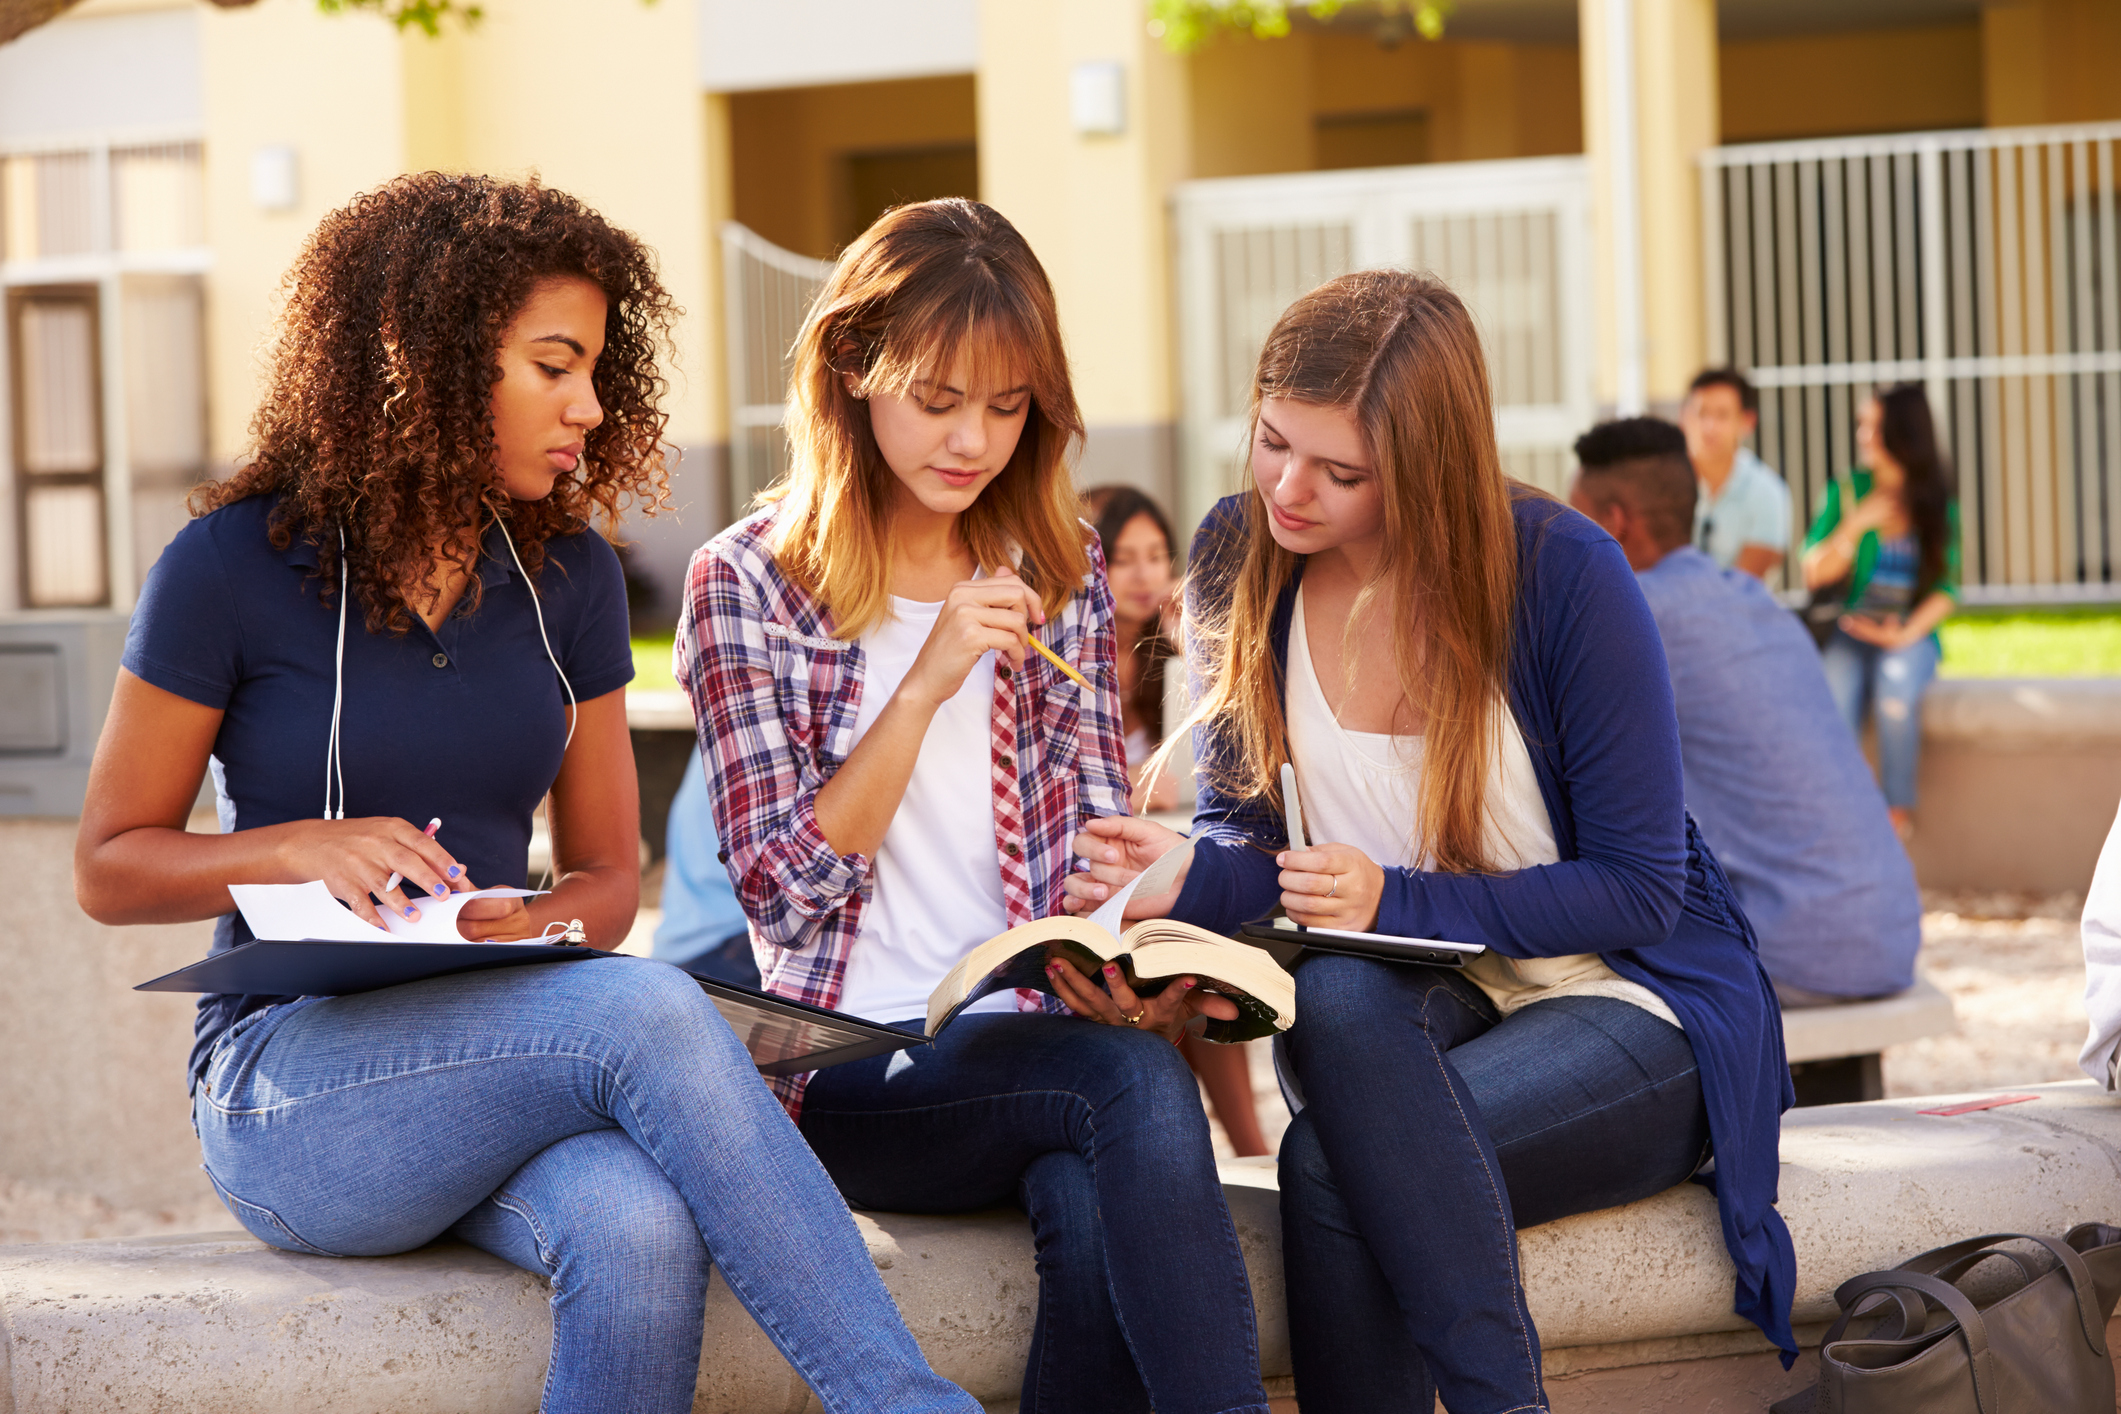 Three Female High School Students Working On Campus With Text Books And File